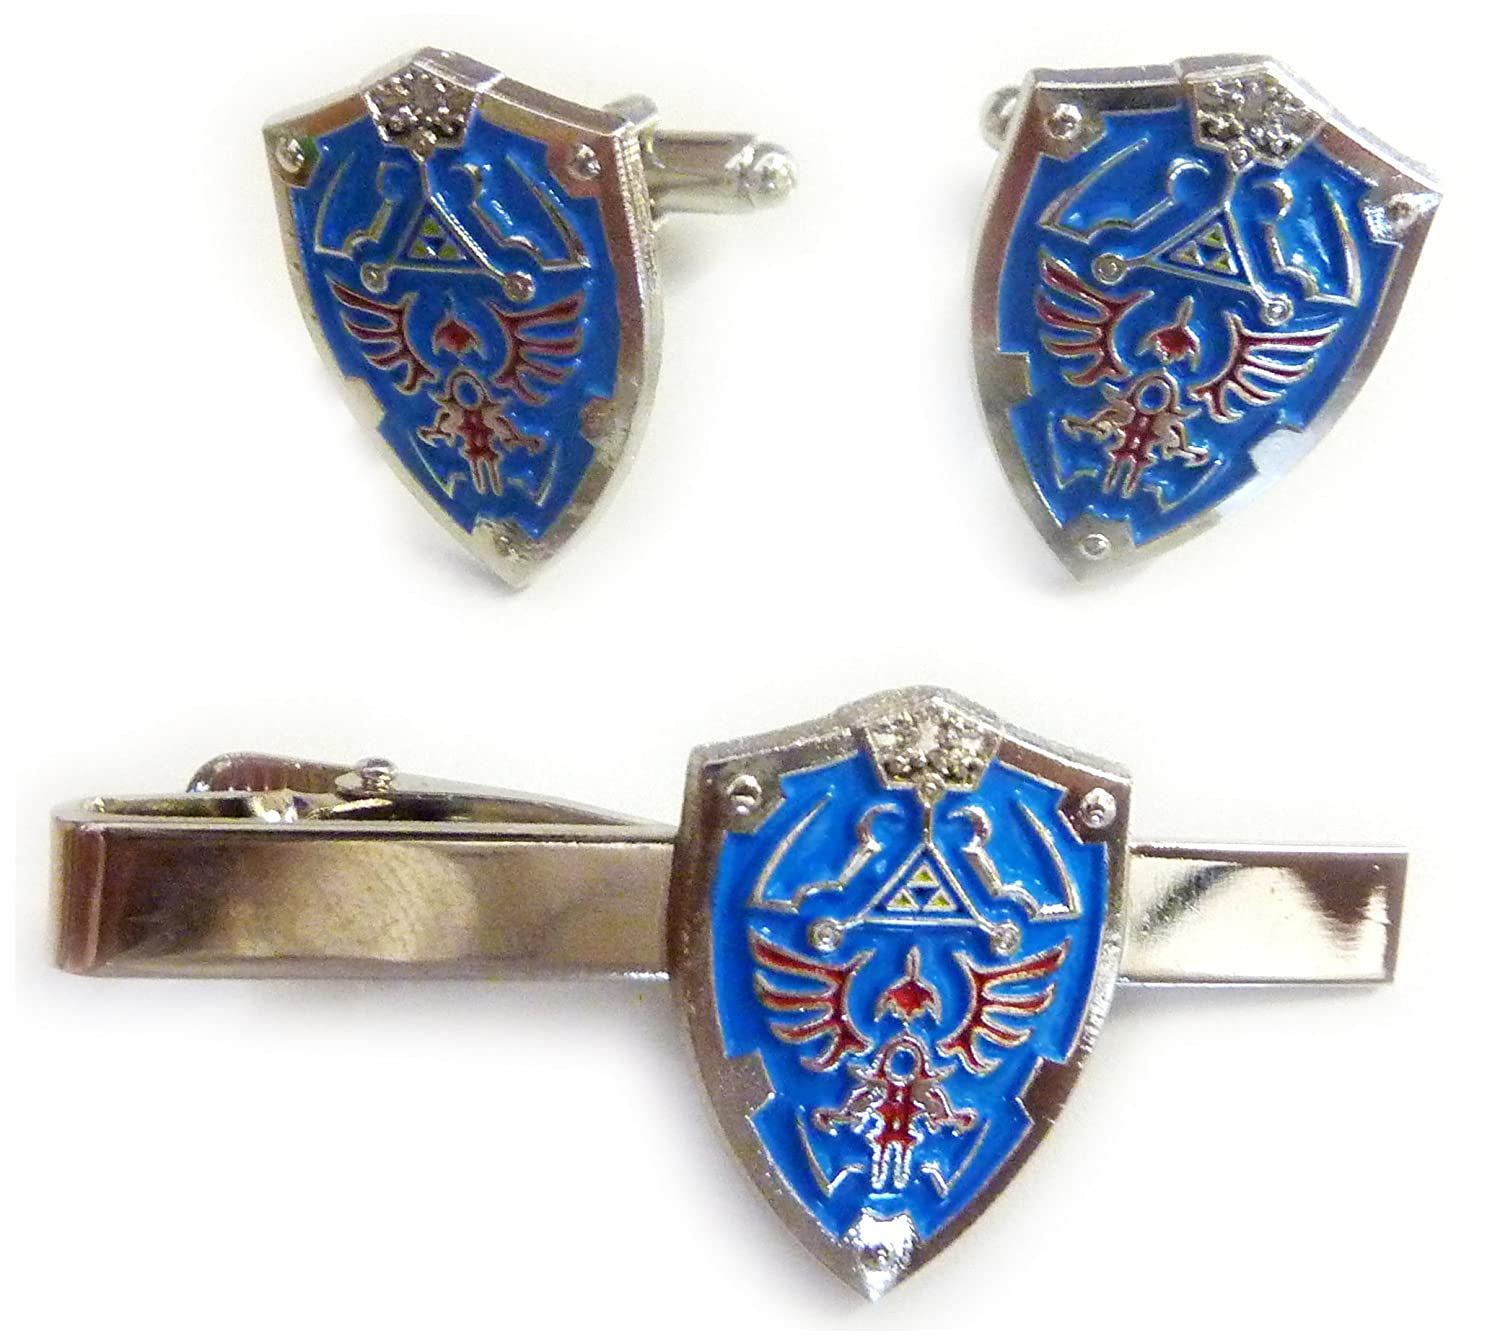 Legend of Zelda Hylian Triforce Mini Shield TIE Bar Clip Cufflinks Set GeoPromotions